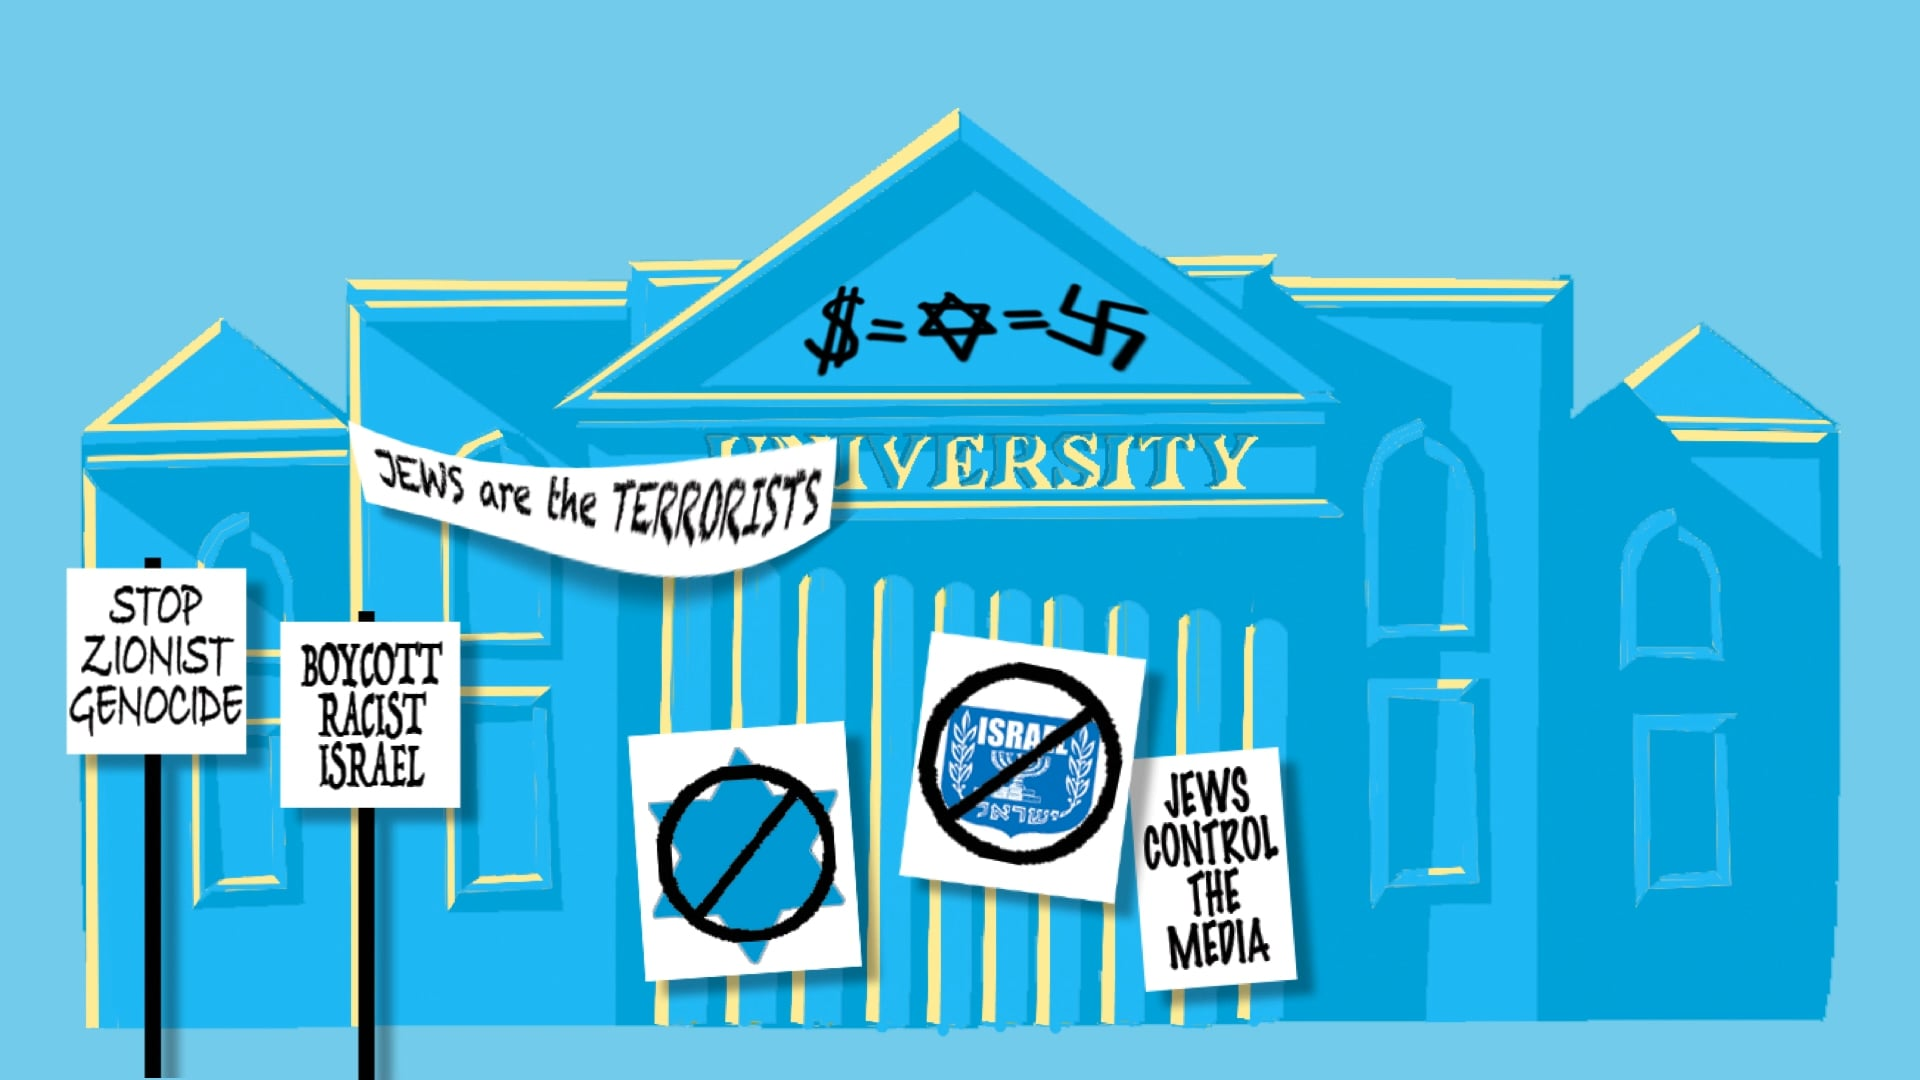 Antisemitism on College Campuses